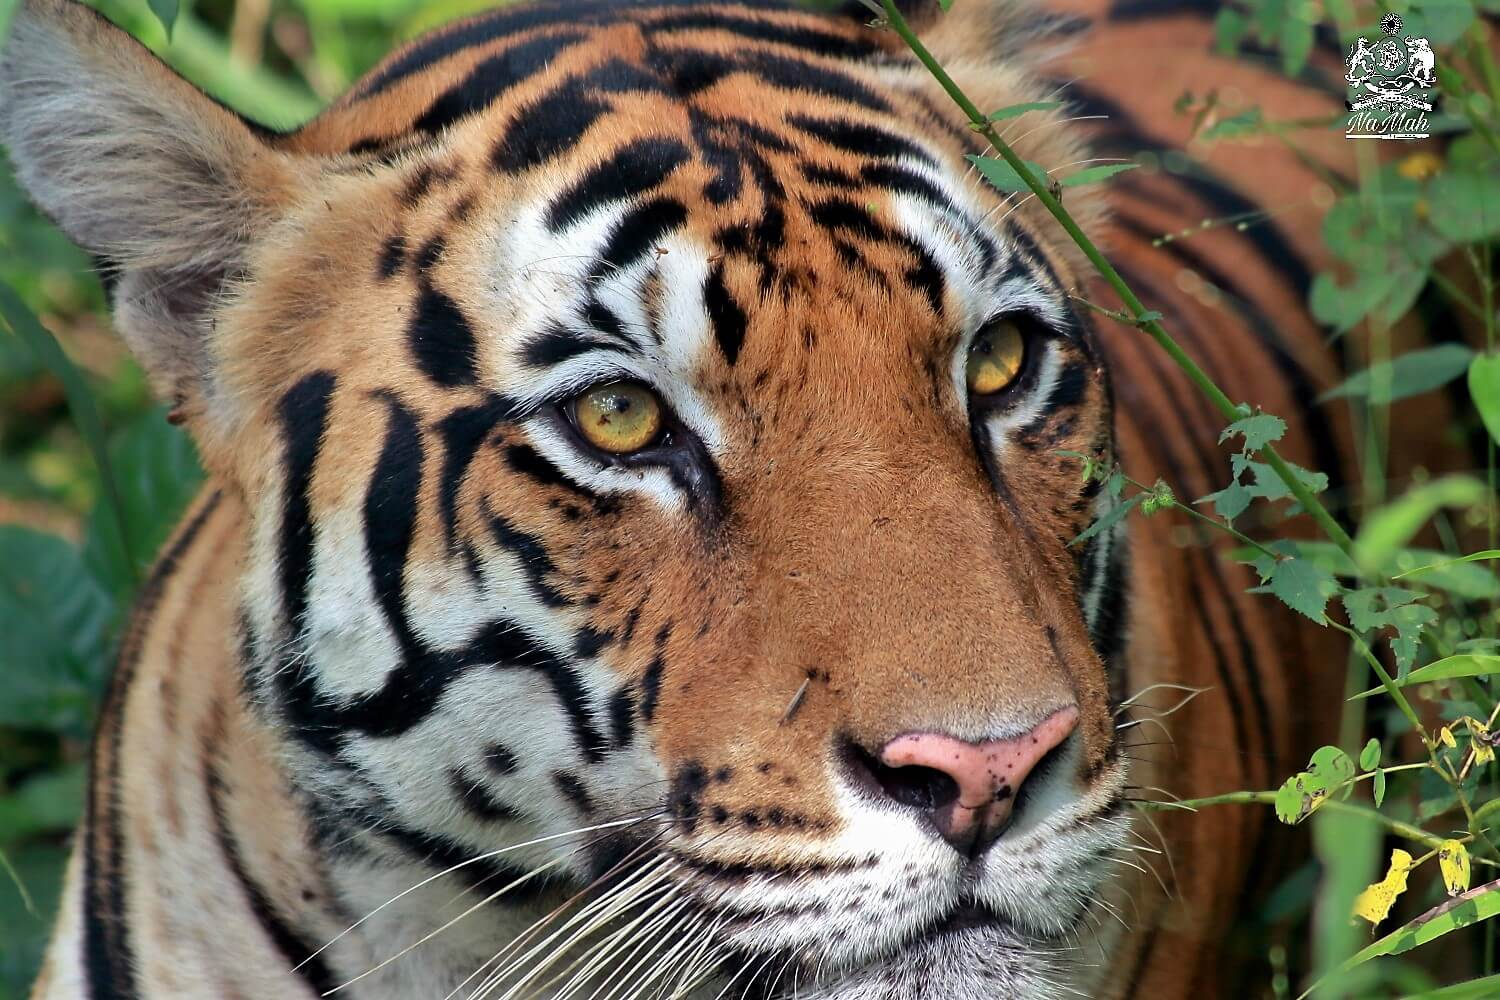 Tiger close up portrait photograph from Kanha National Park